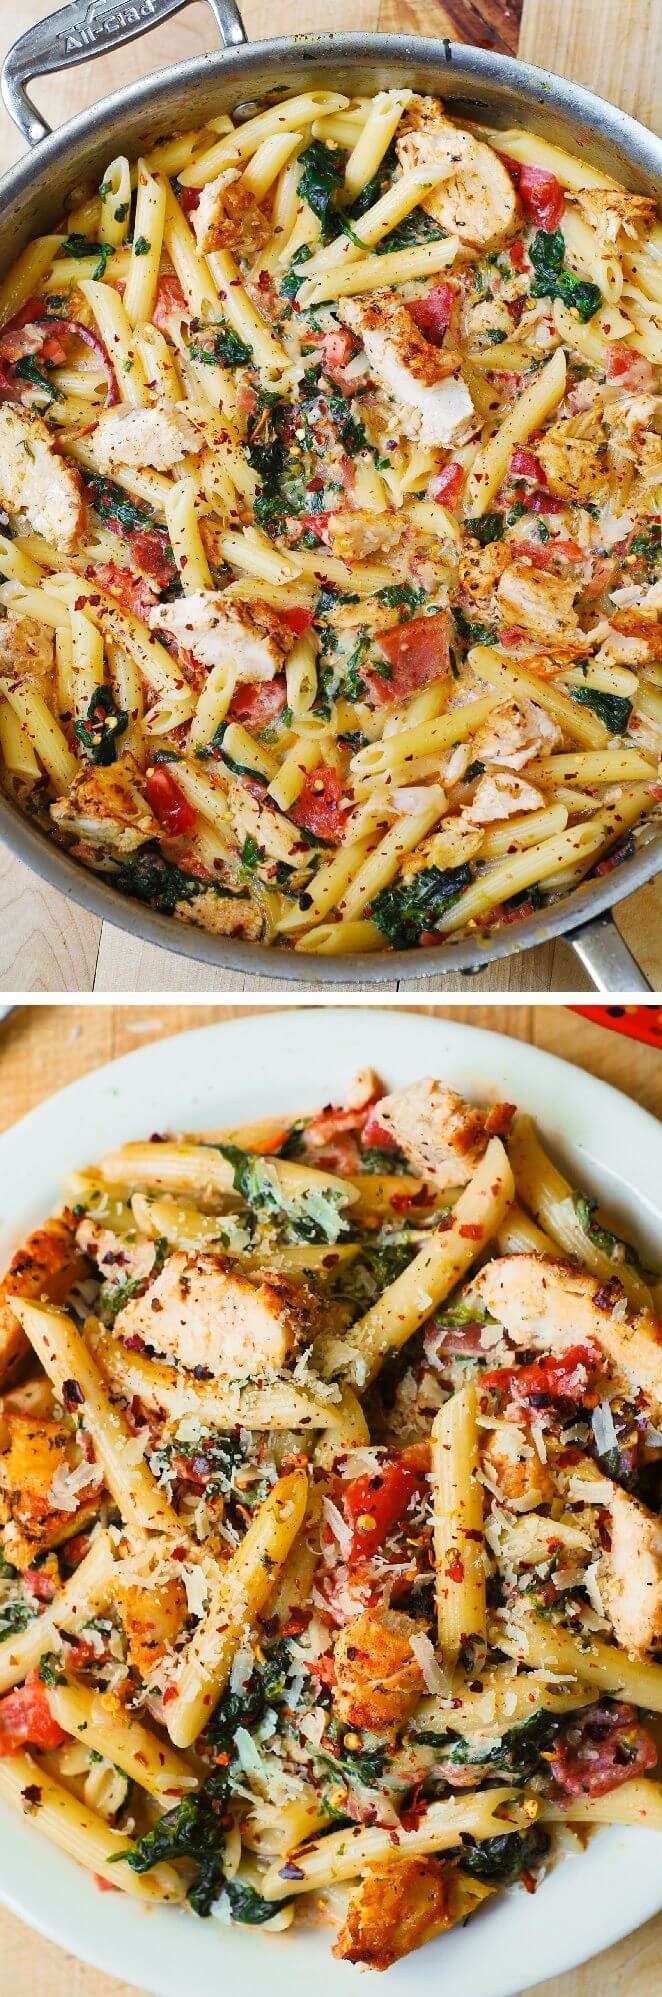 Chicken+and+Bacon+Pasta+with+Spinach+and+Tomatoes+in+Garlic+Cream+Sauce